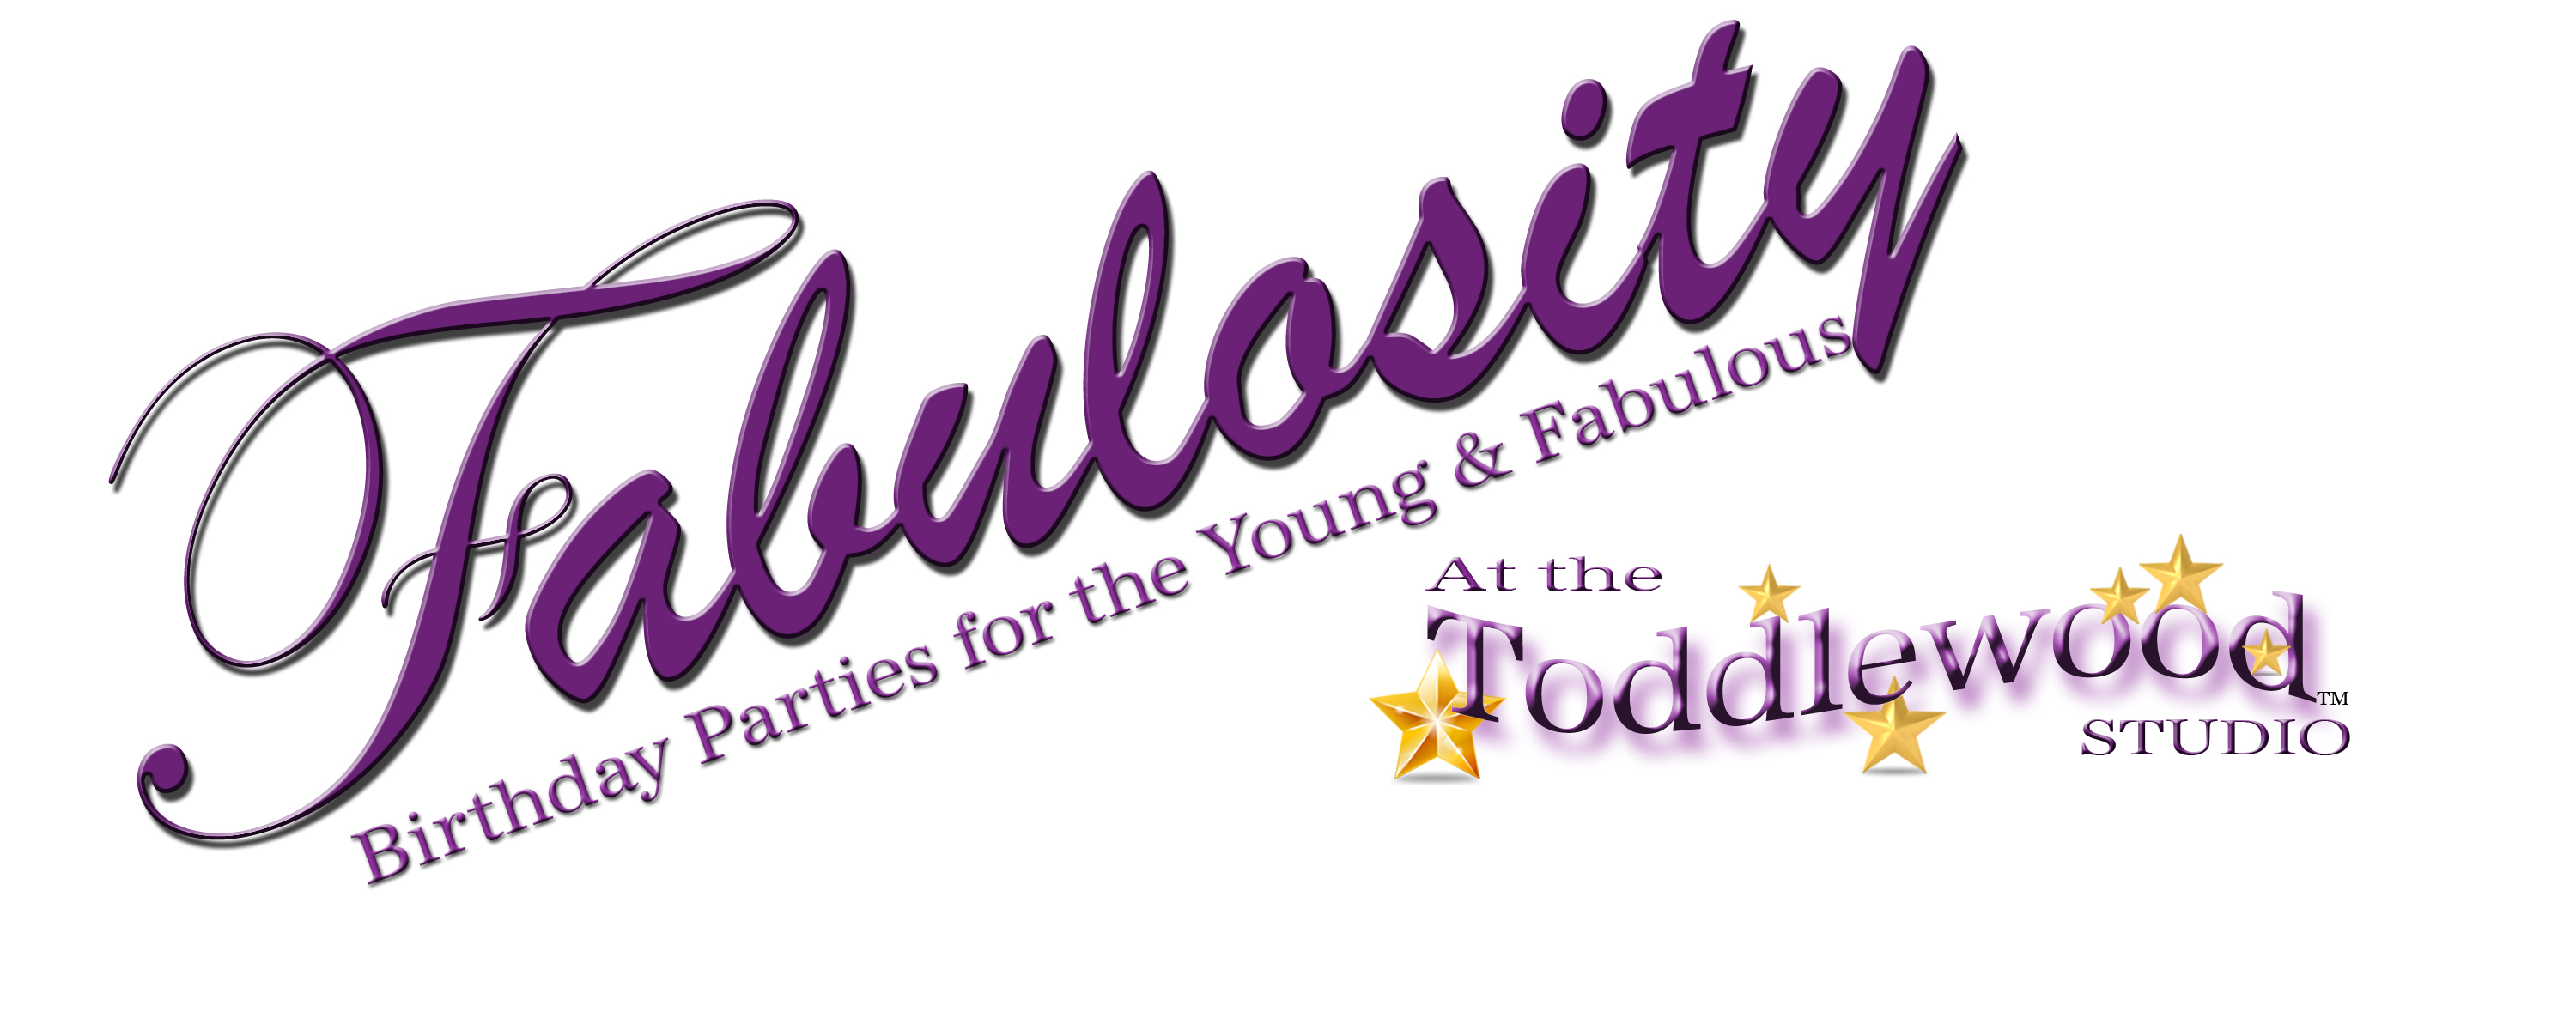 Toddlewood Studio Birthday Parties